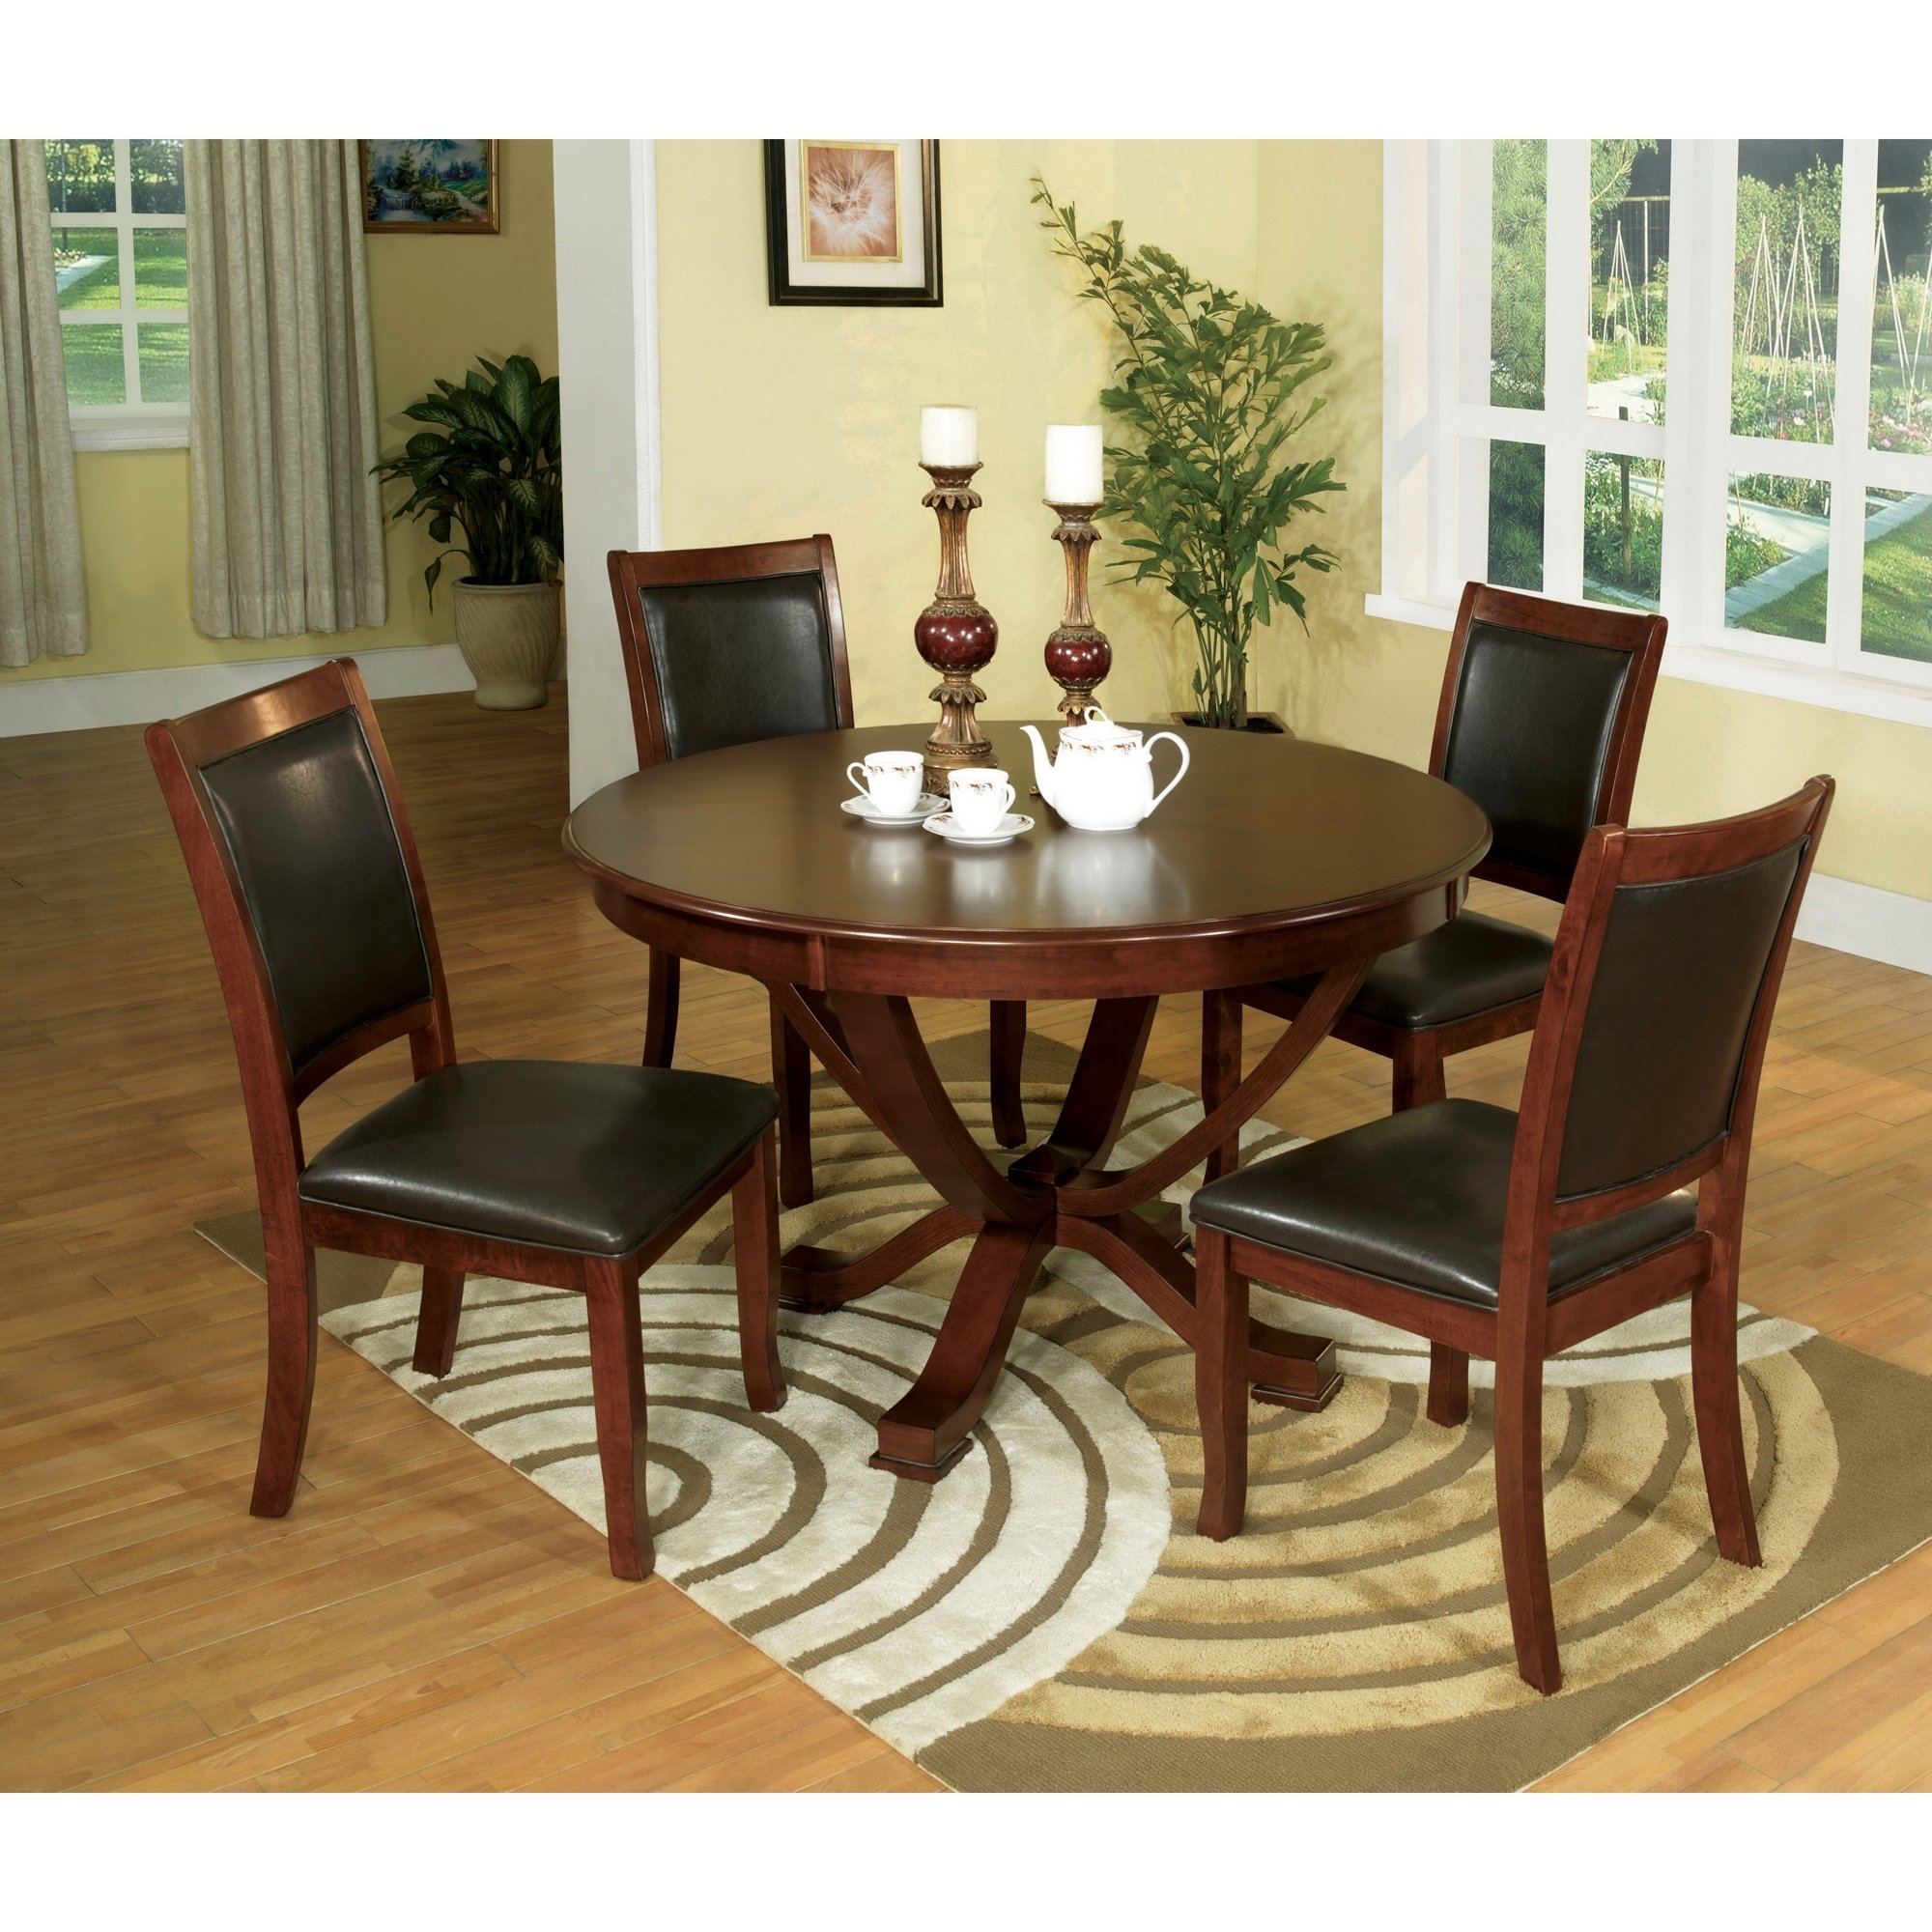 Shop Furniture Of America Kristen 5 Piece Brown Cherry Dining Set Regarding Most Recent Kirsten 5 Piece Dining Sets (Image 20 of 20)